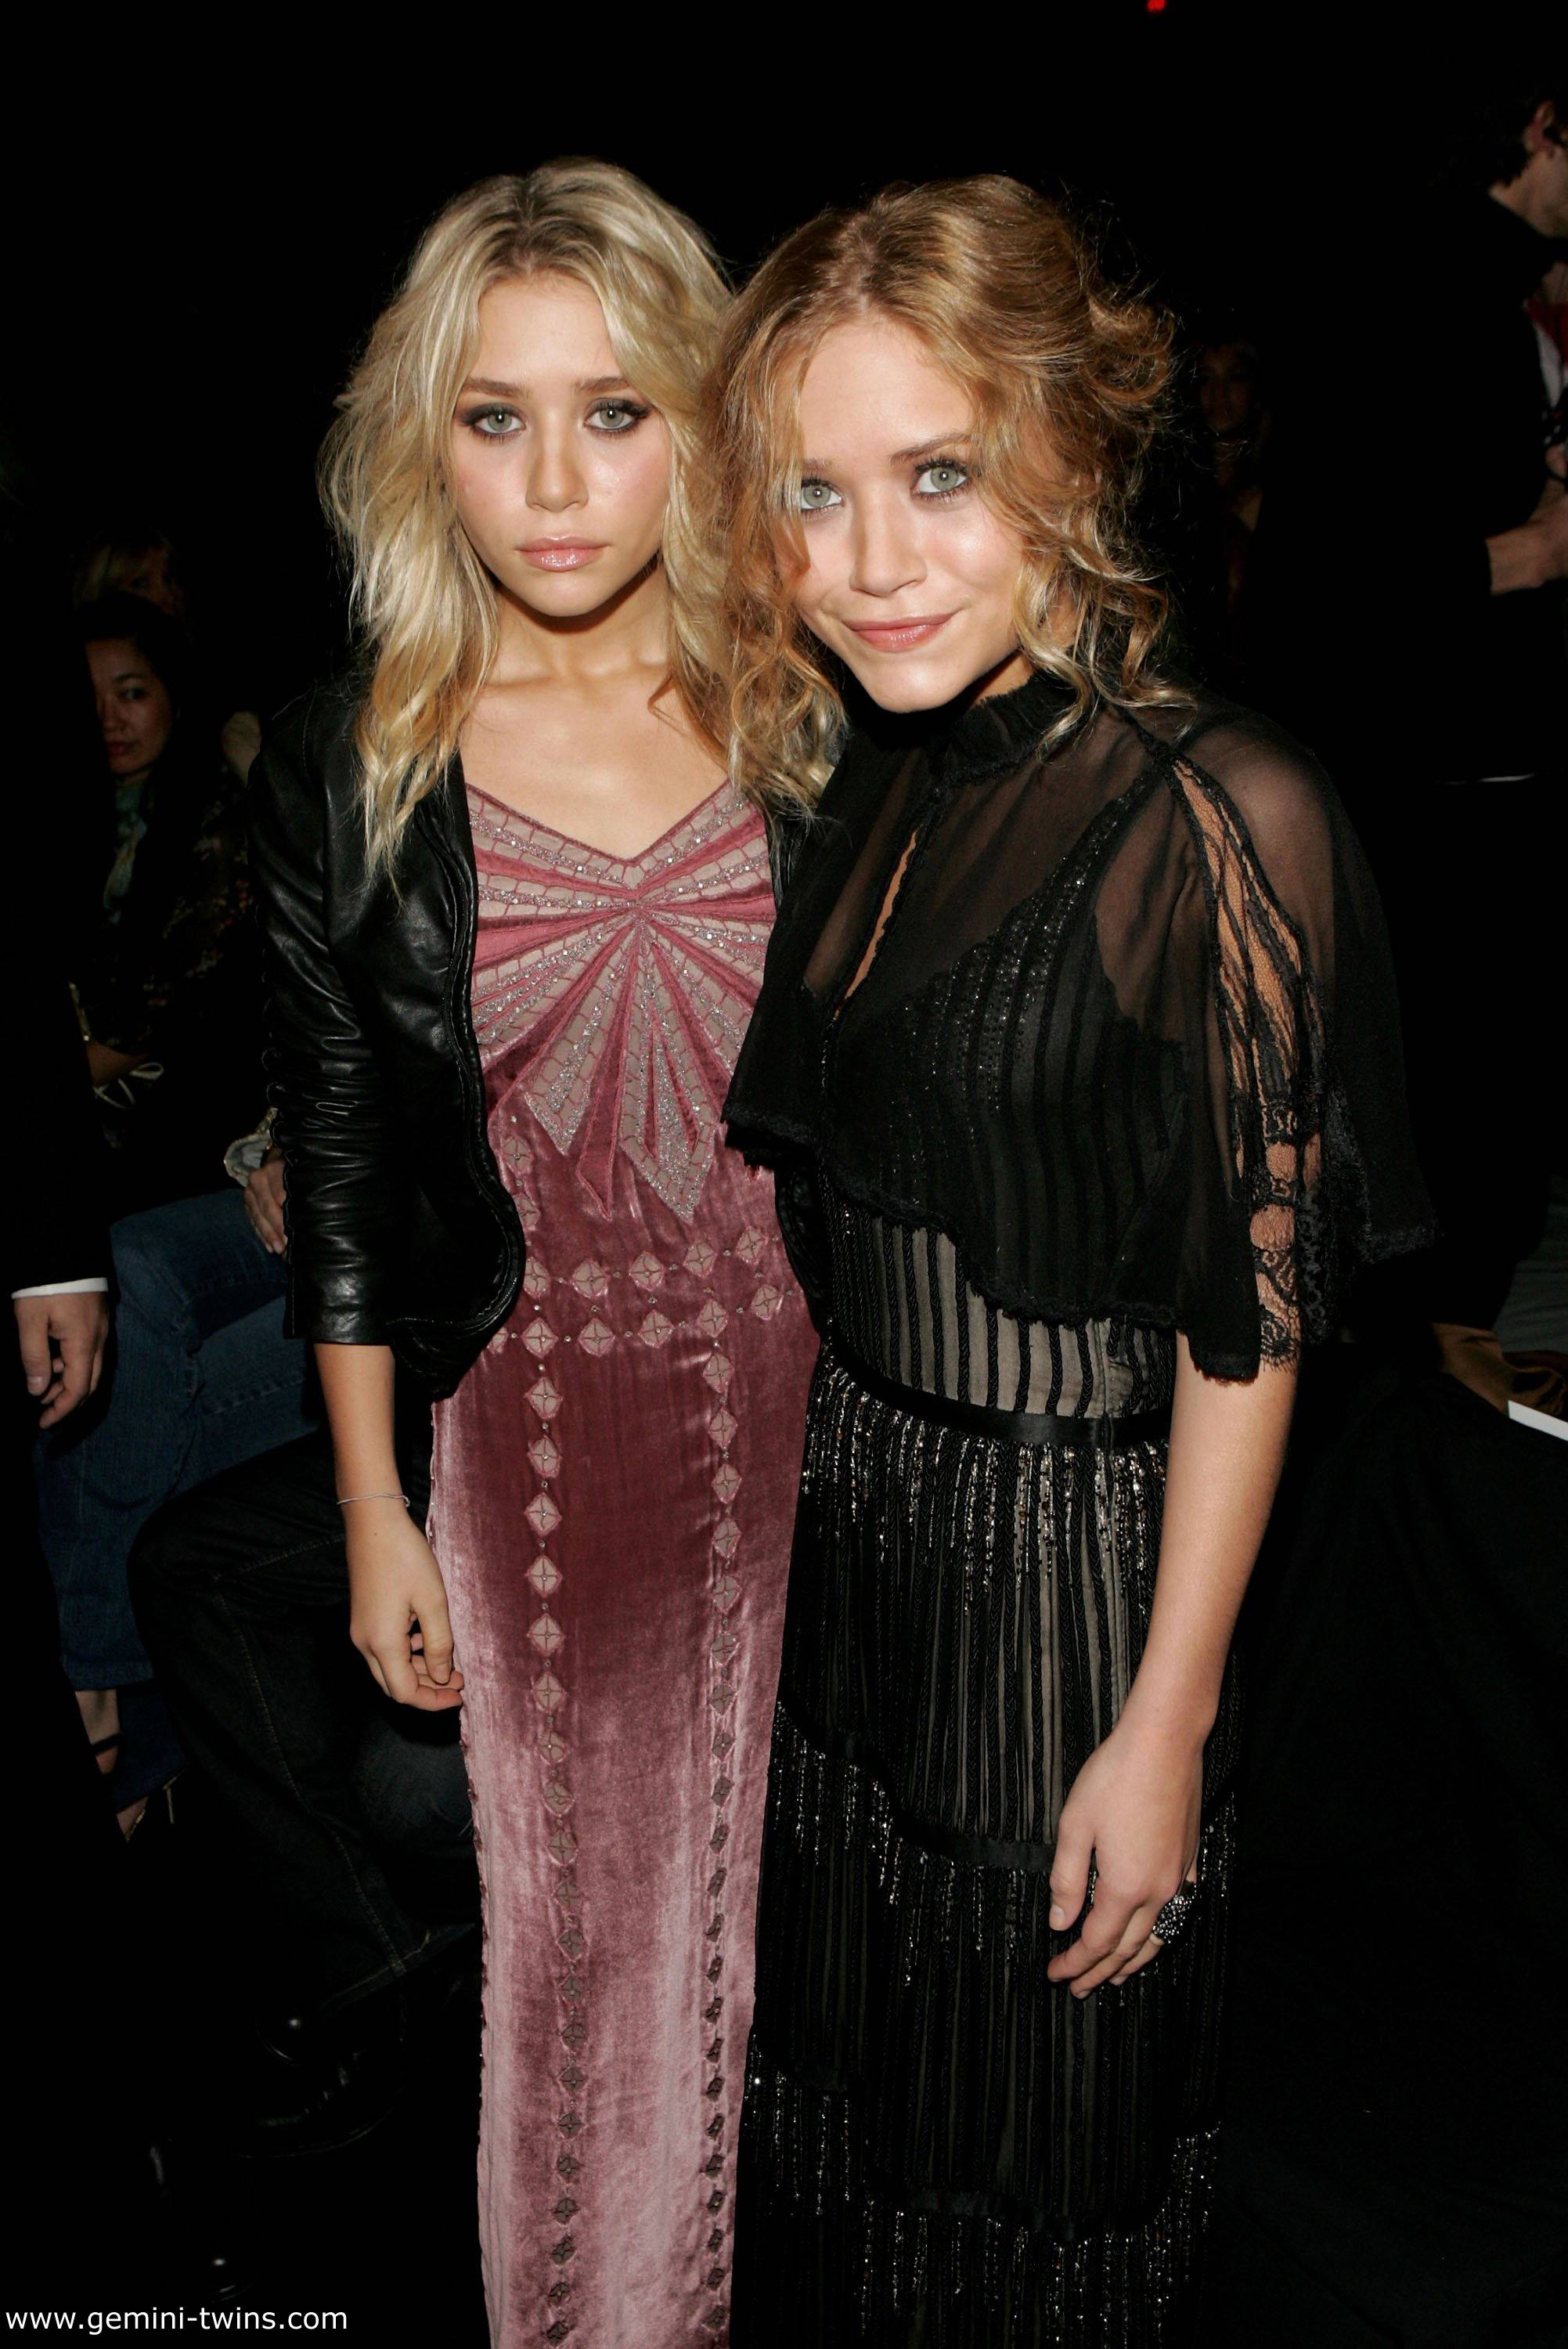 Mary-Kate Olsen - Wikipedia 32